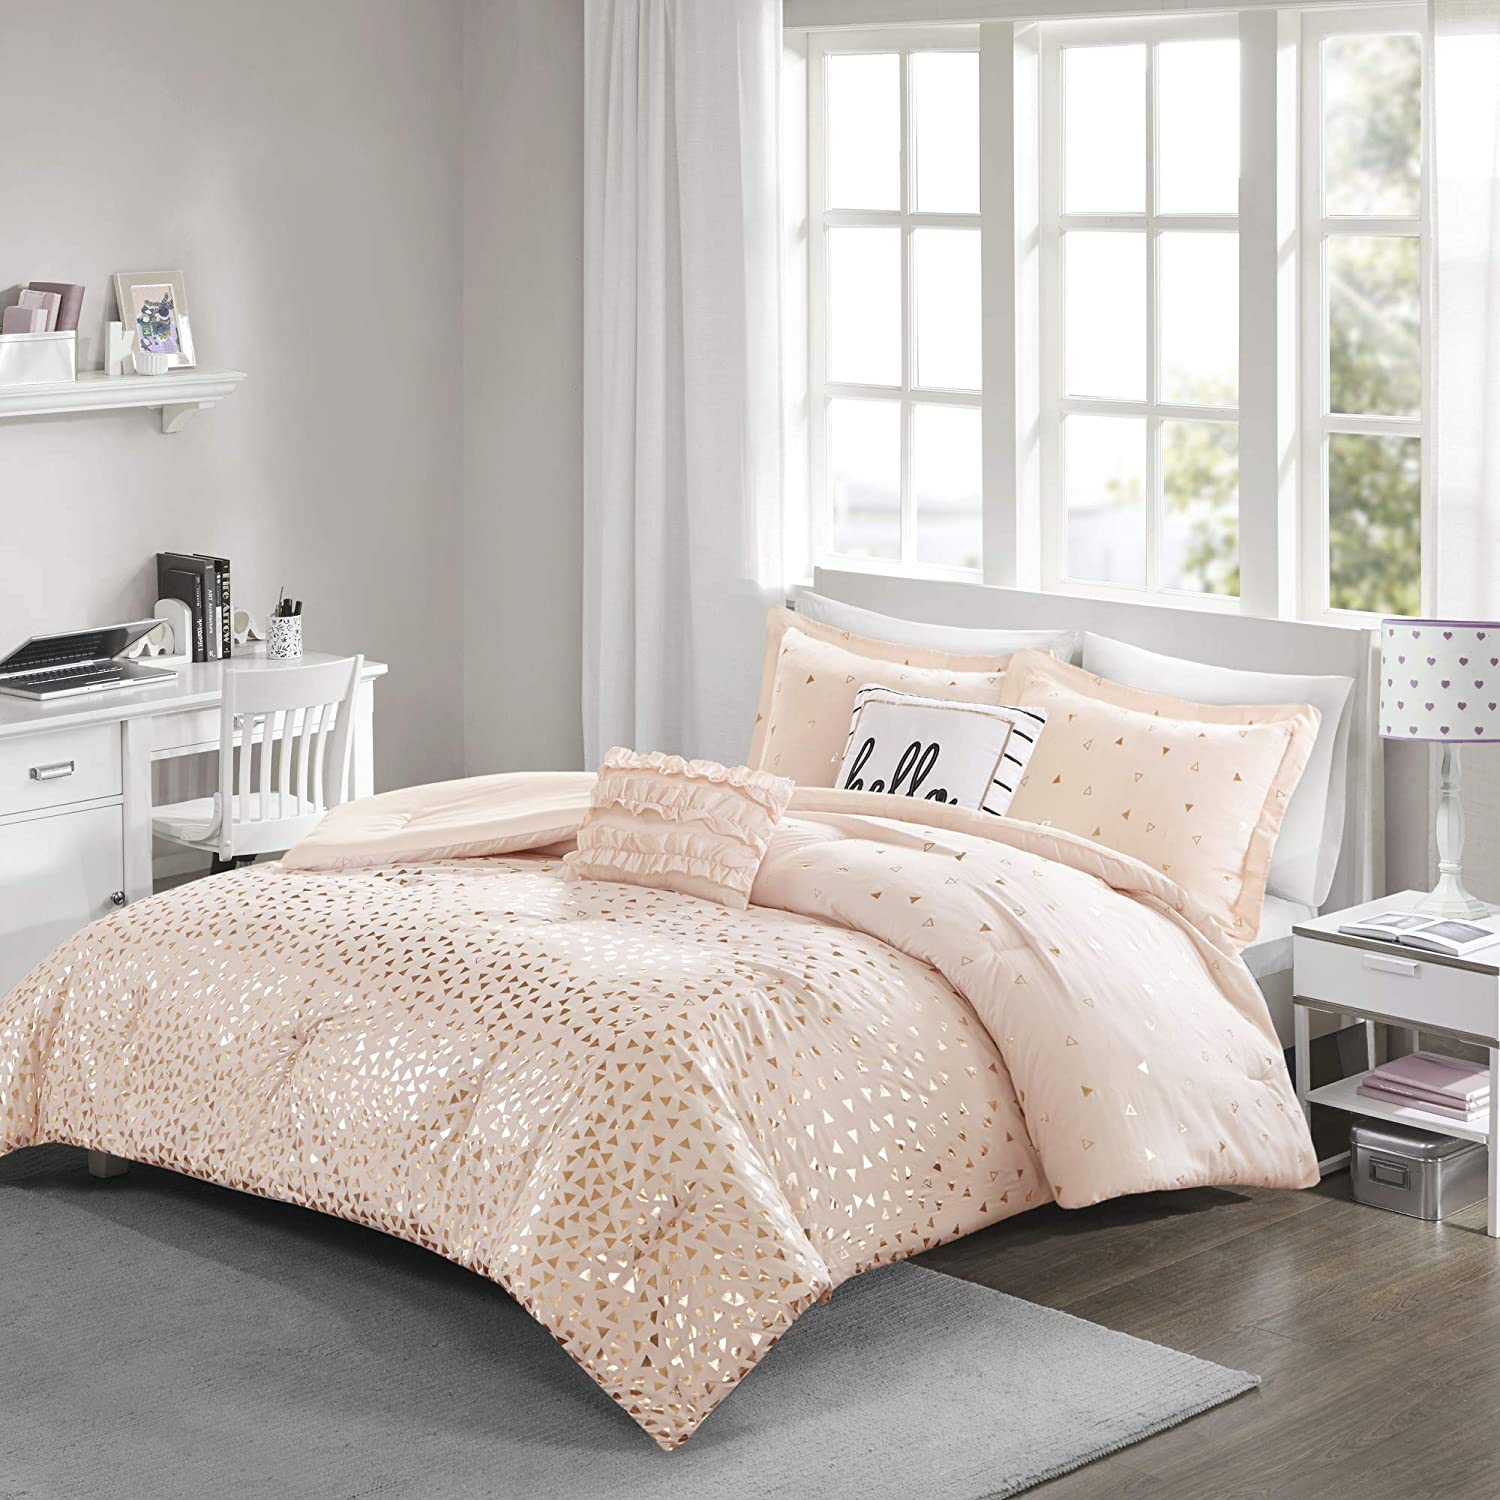 Intelligent Design Zoey Comforter Reversible Triangle Metallic Printed 100% Brushed Ultra-Soft Overfilled Down Alternative Hypoallergenic All Season Bedding-Set, Full/Queen, Blush/Rosegold